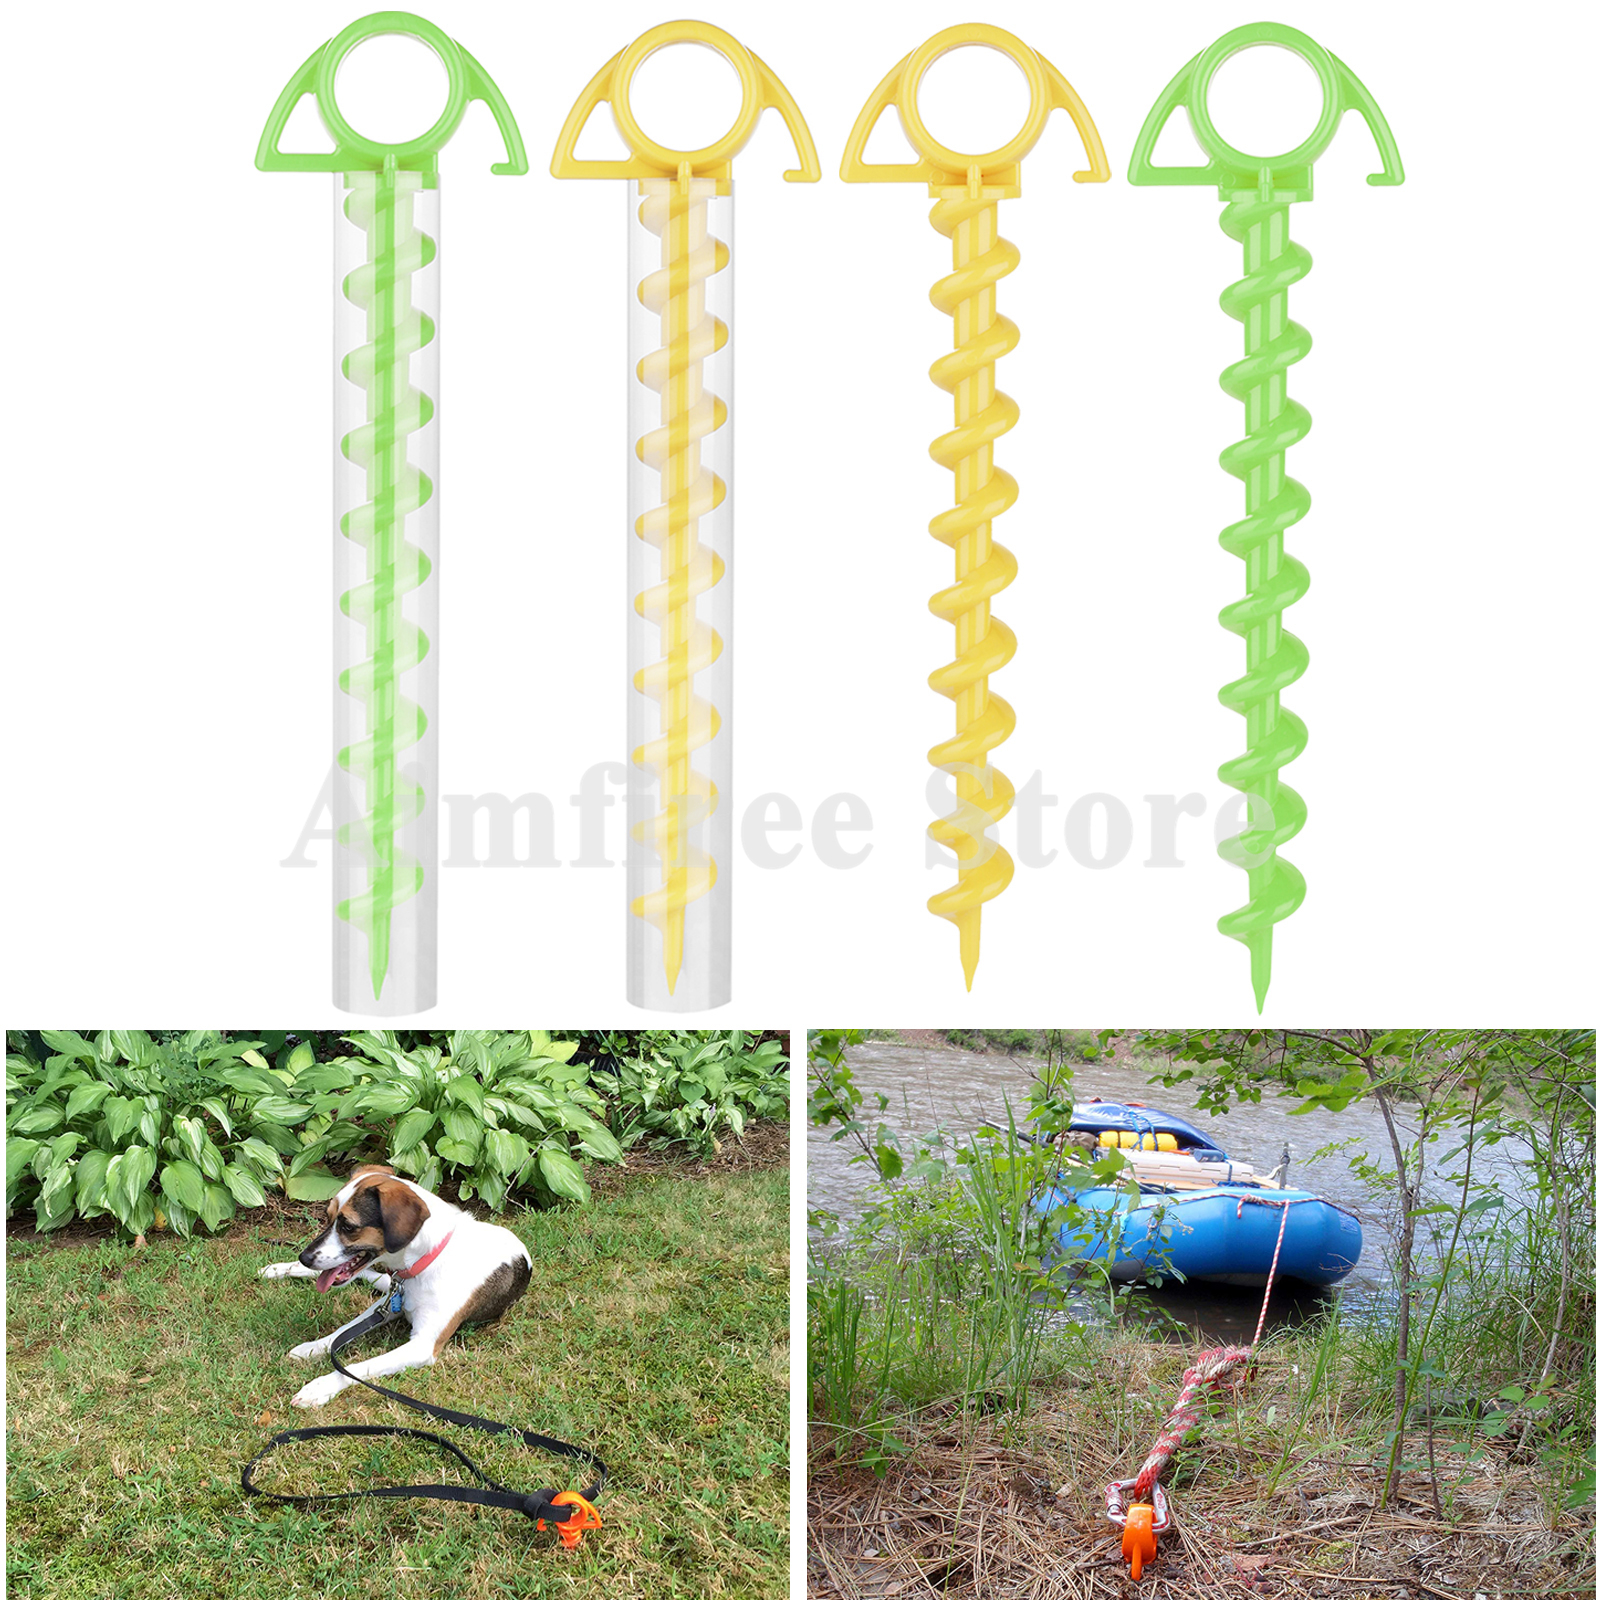 Green/Yellow Ultimate Ground Anchor Multi-purpose Tent Camping Nail Pet Strap Nail